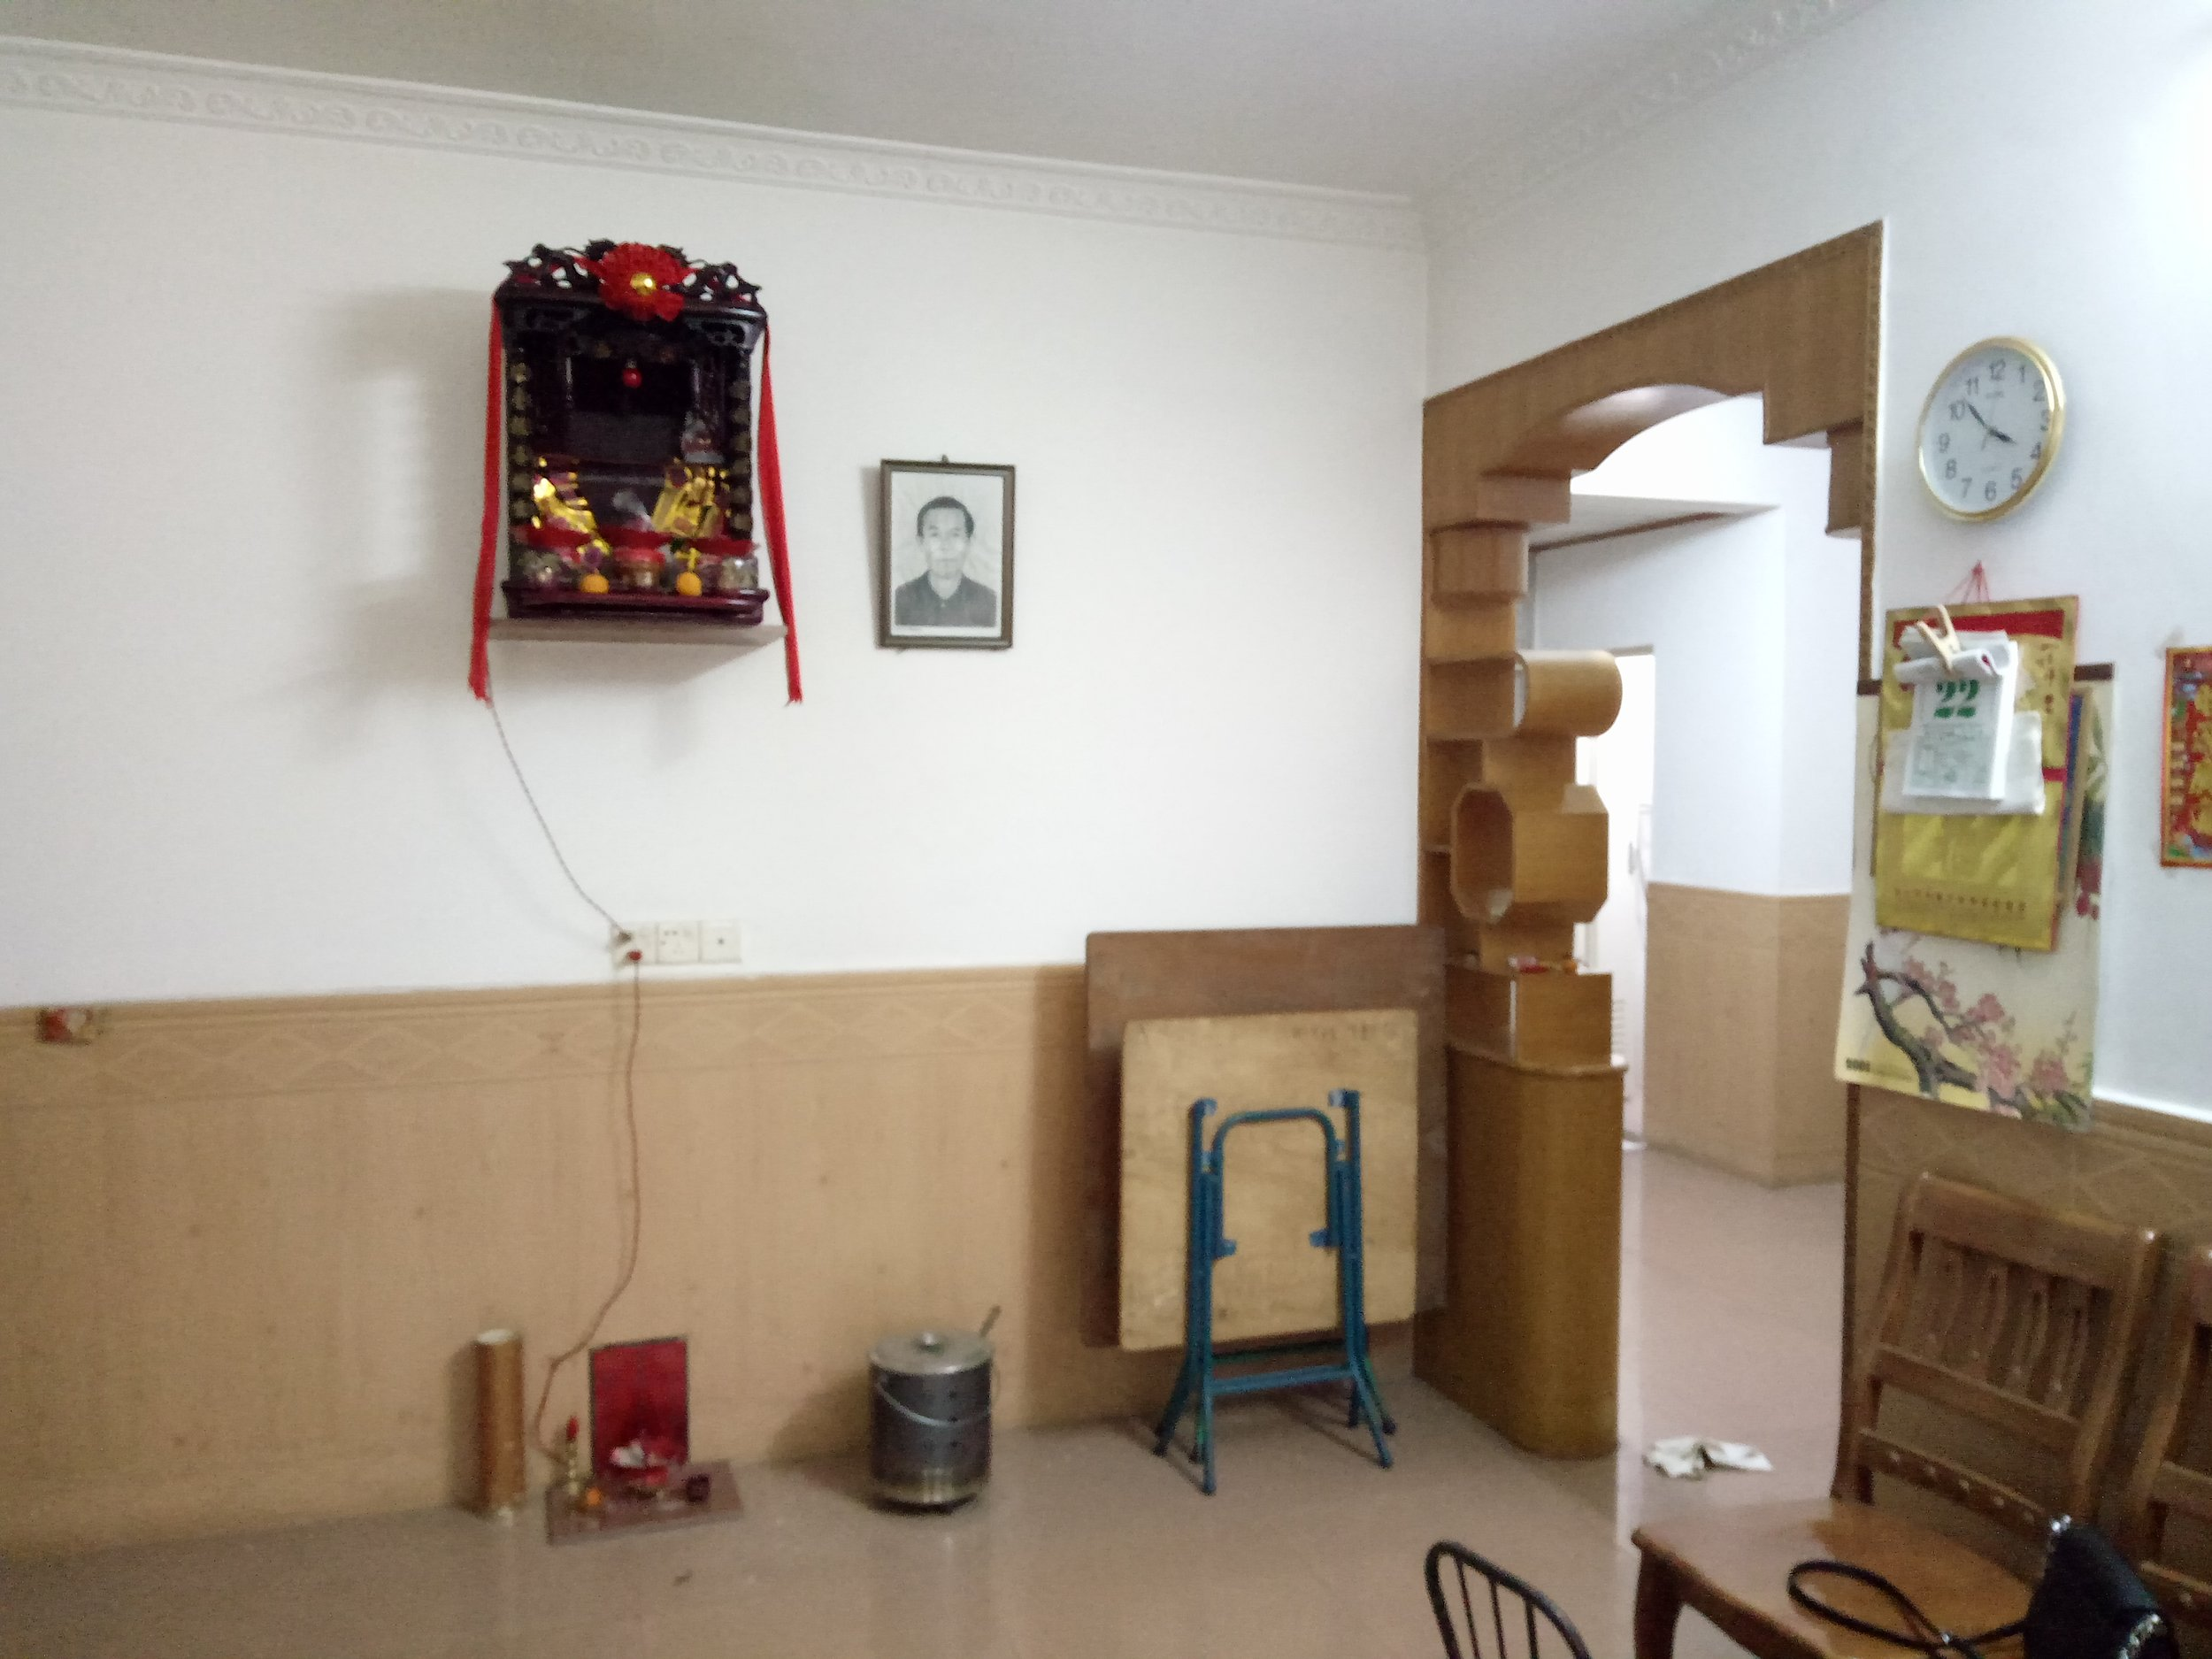 Figure 4. Spirit tablet in the new house. Photograph by JiaJun Liu, 2019.